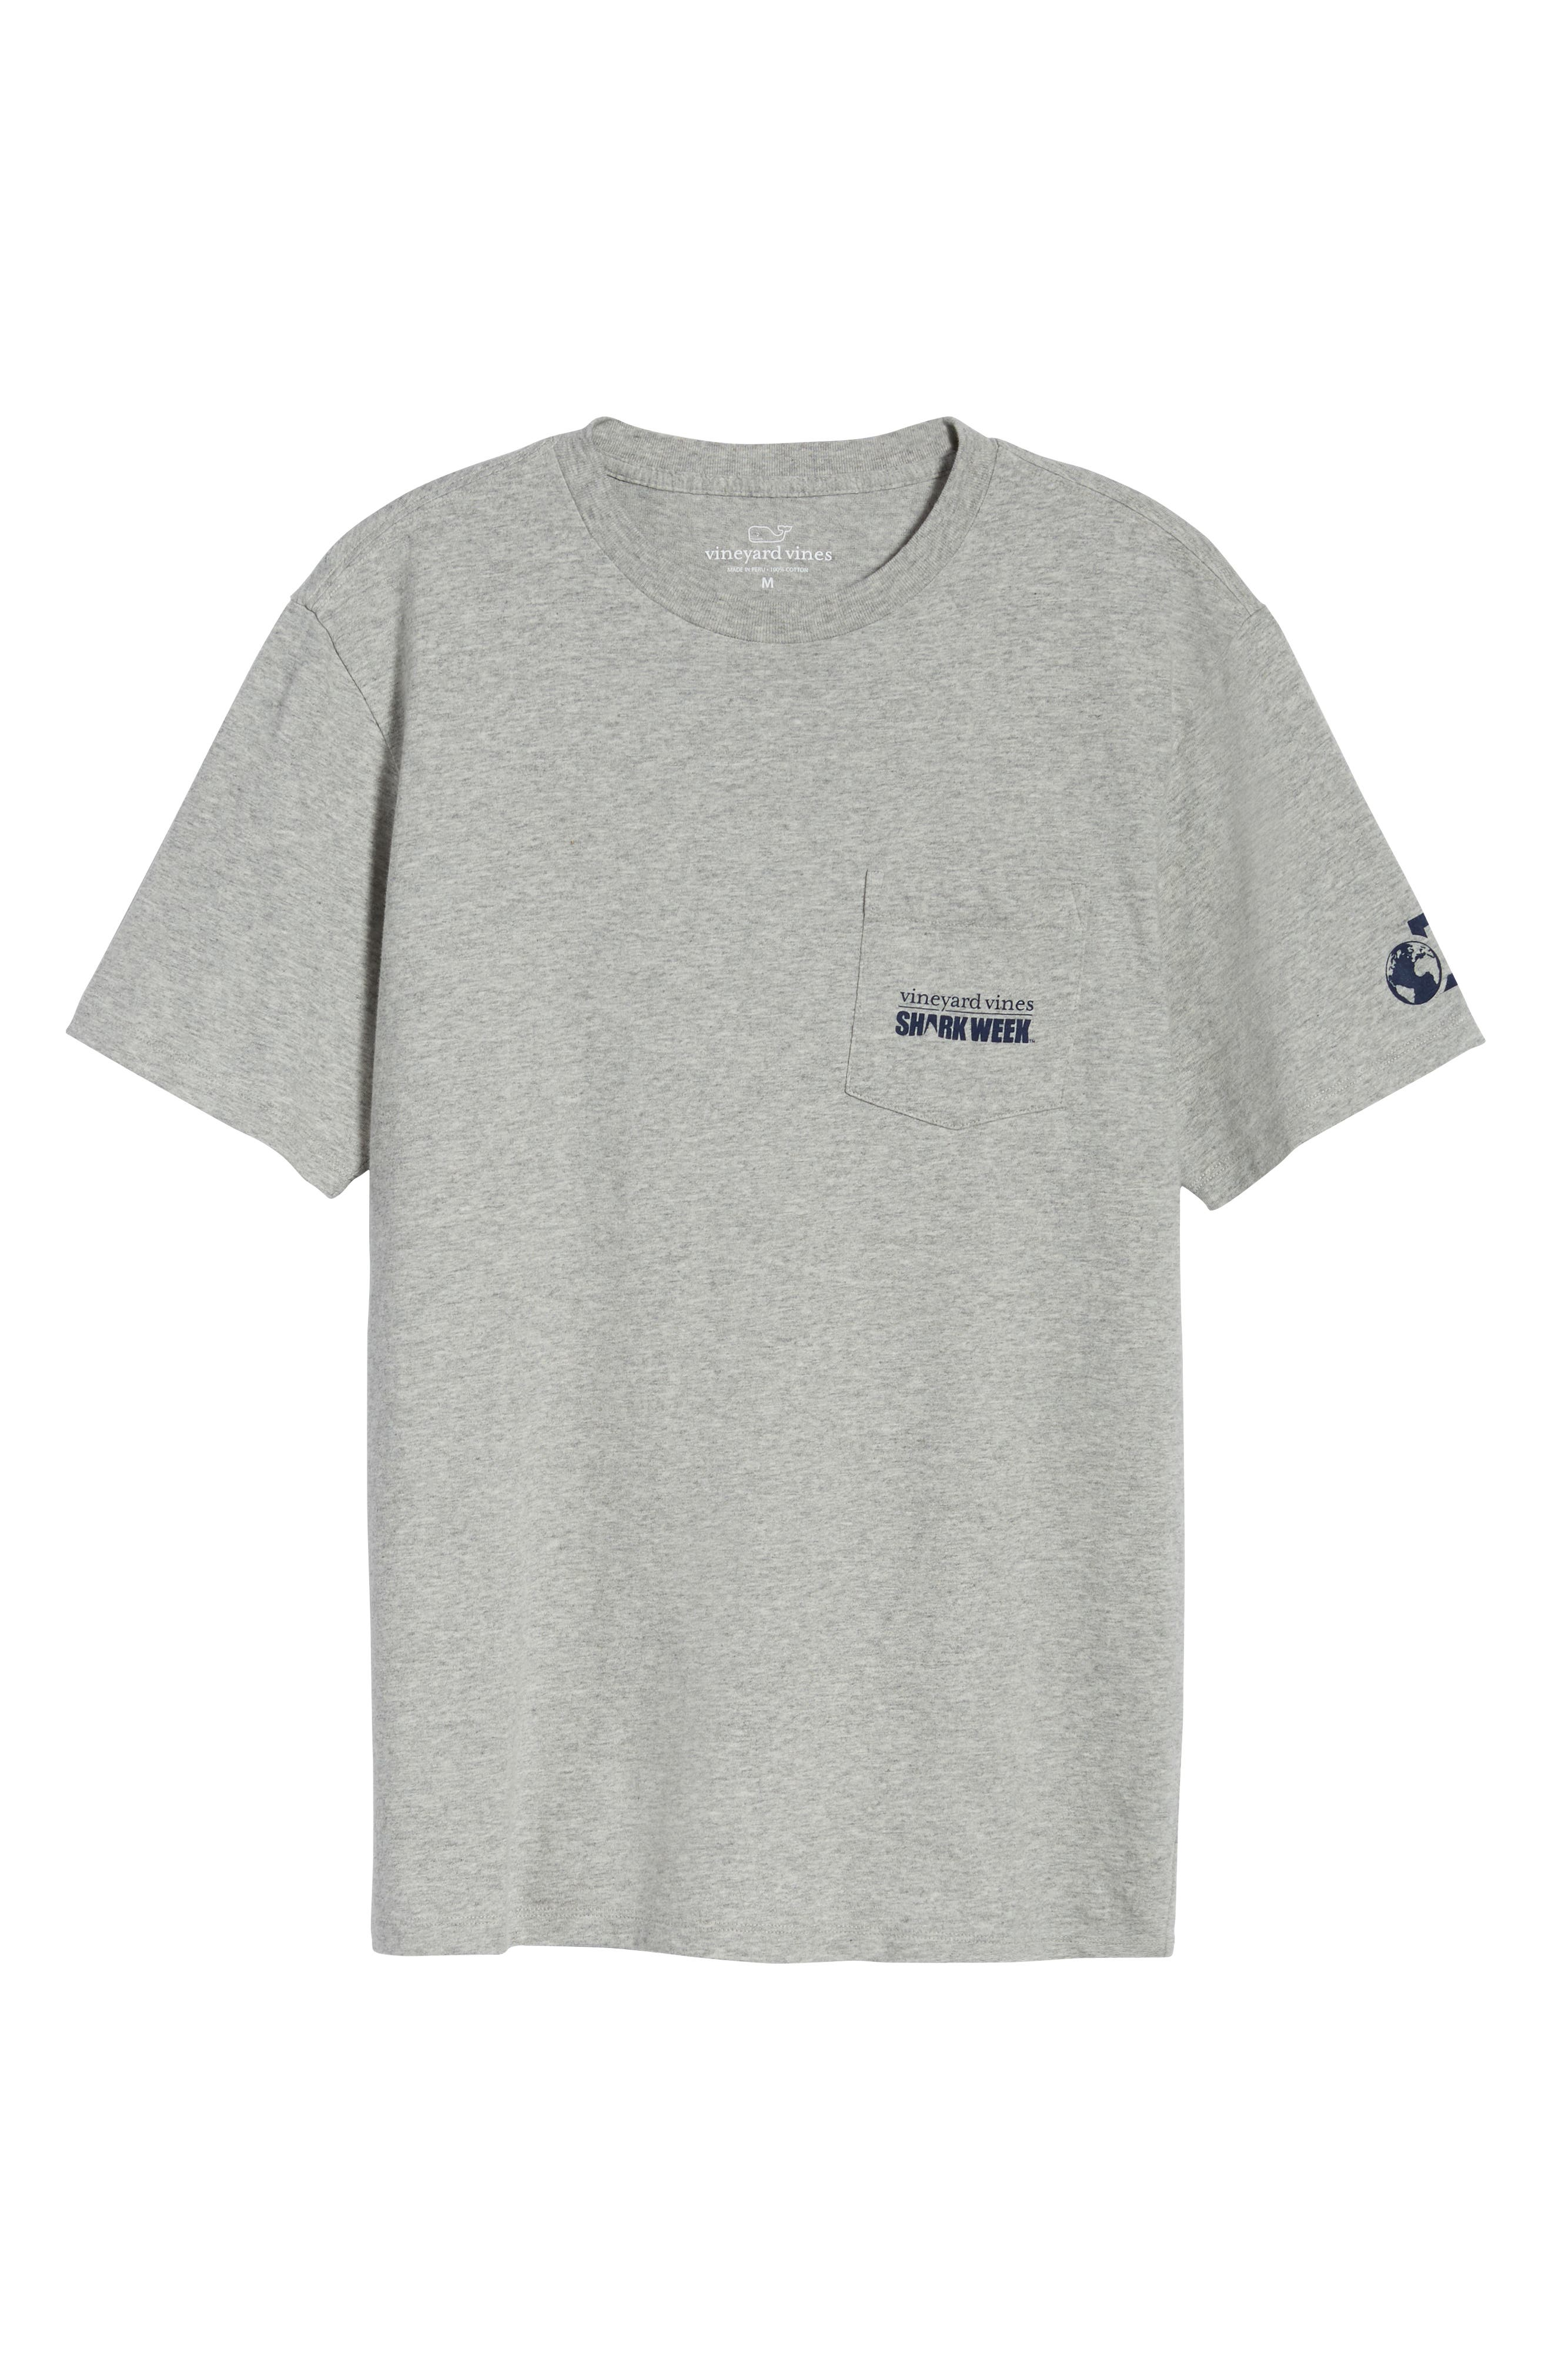 x Shark Week<sup>™</sup> Sharks & Stripes Pocket T-Shirt,                             Alternate thumbnail 6, color,                             039